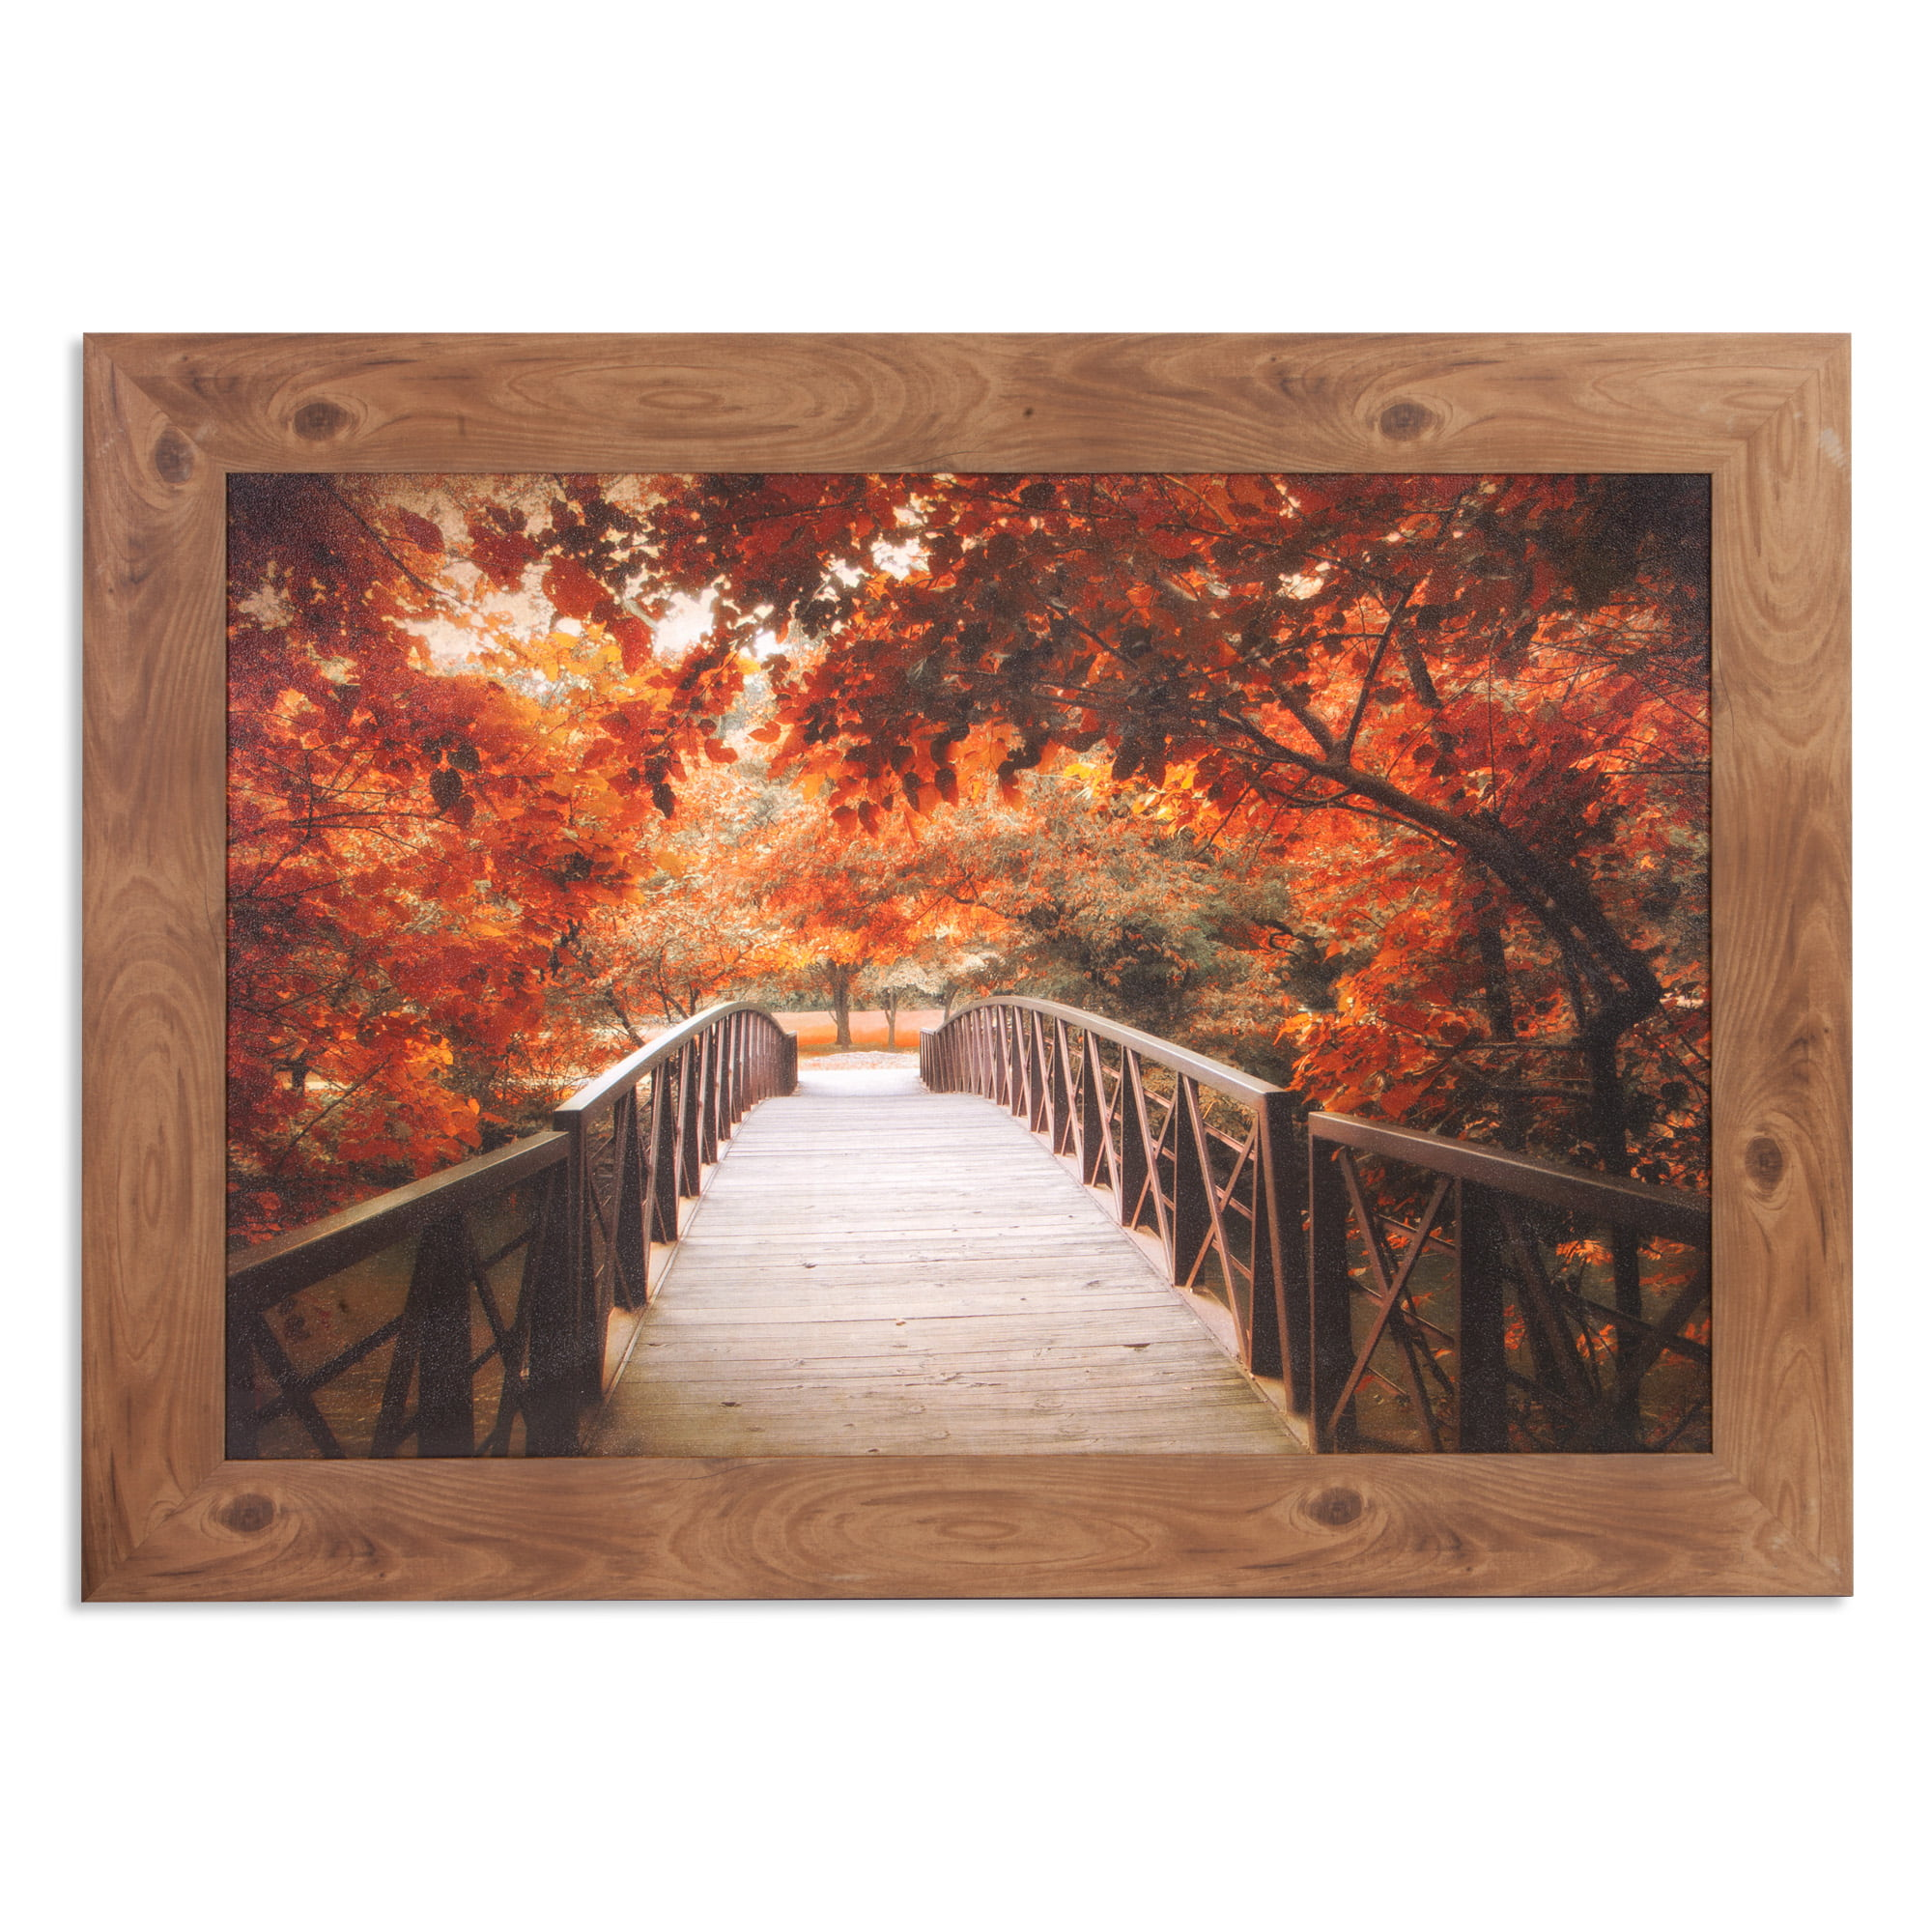 Patton Wall Decor Fall Footbridge Photography Framed Canvas Art by Patton Wall Decor